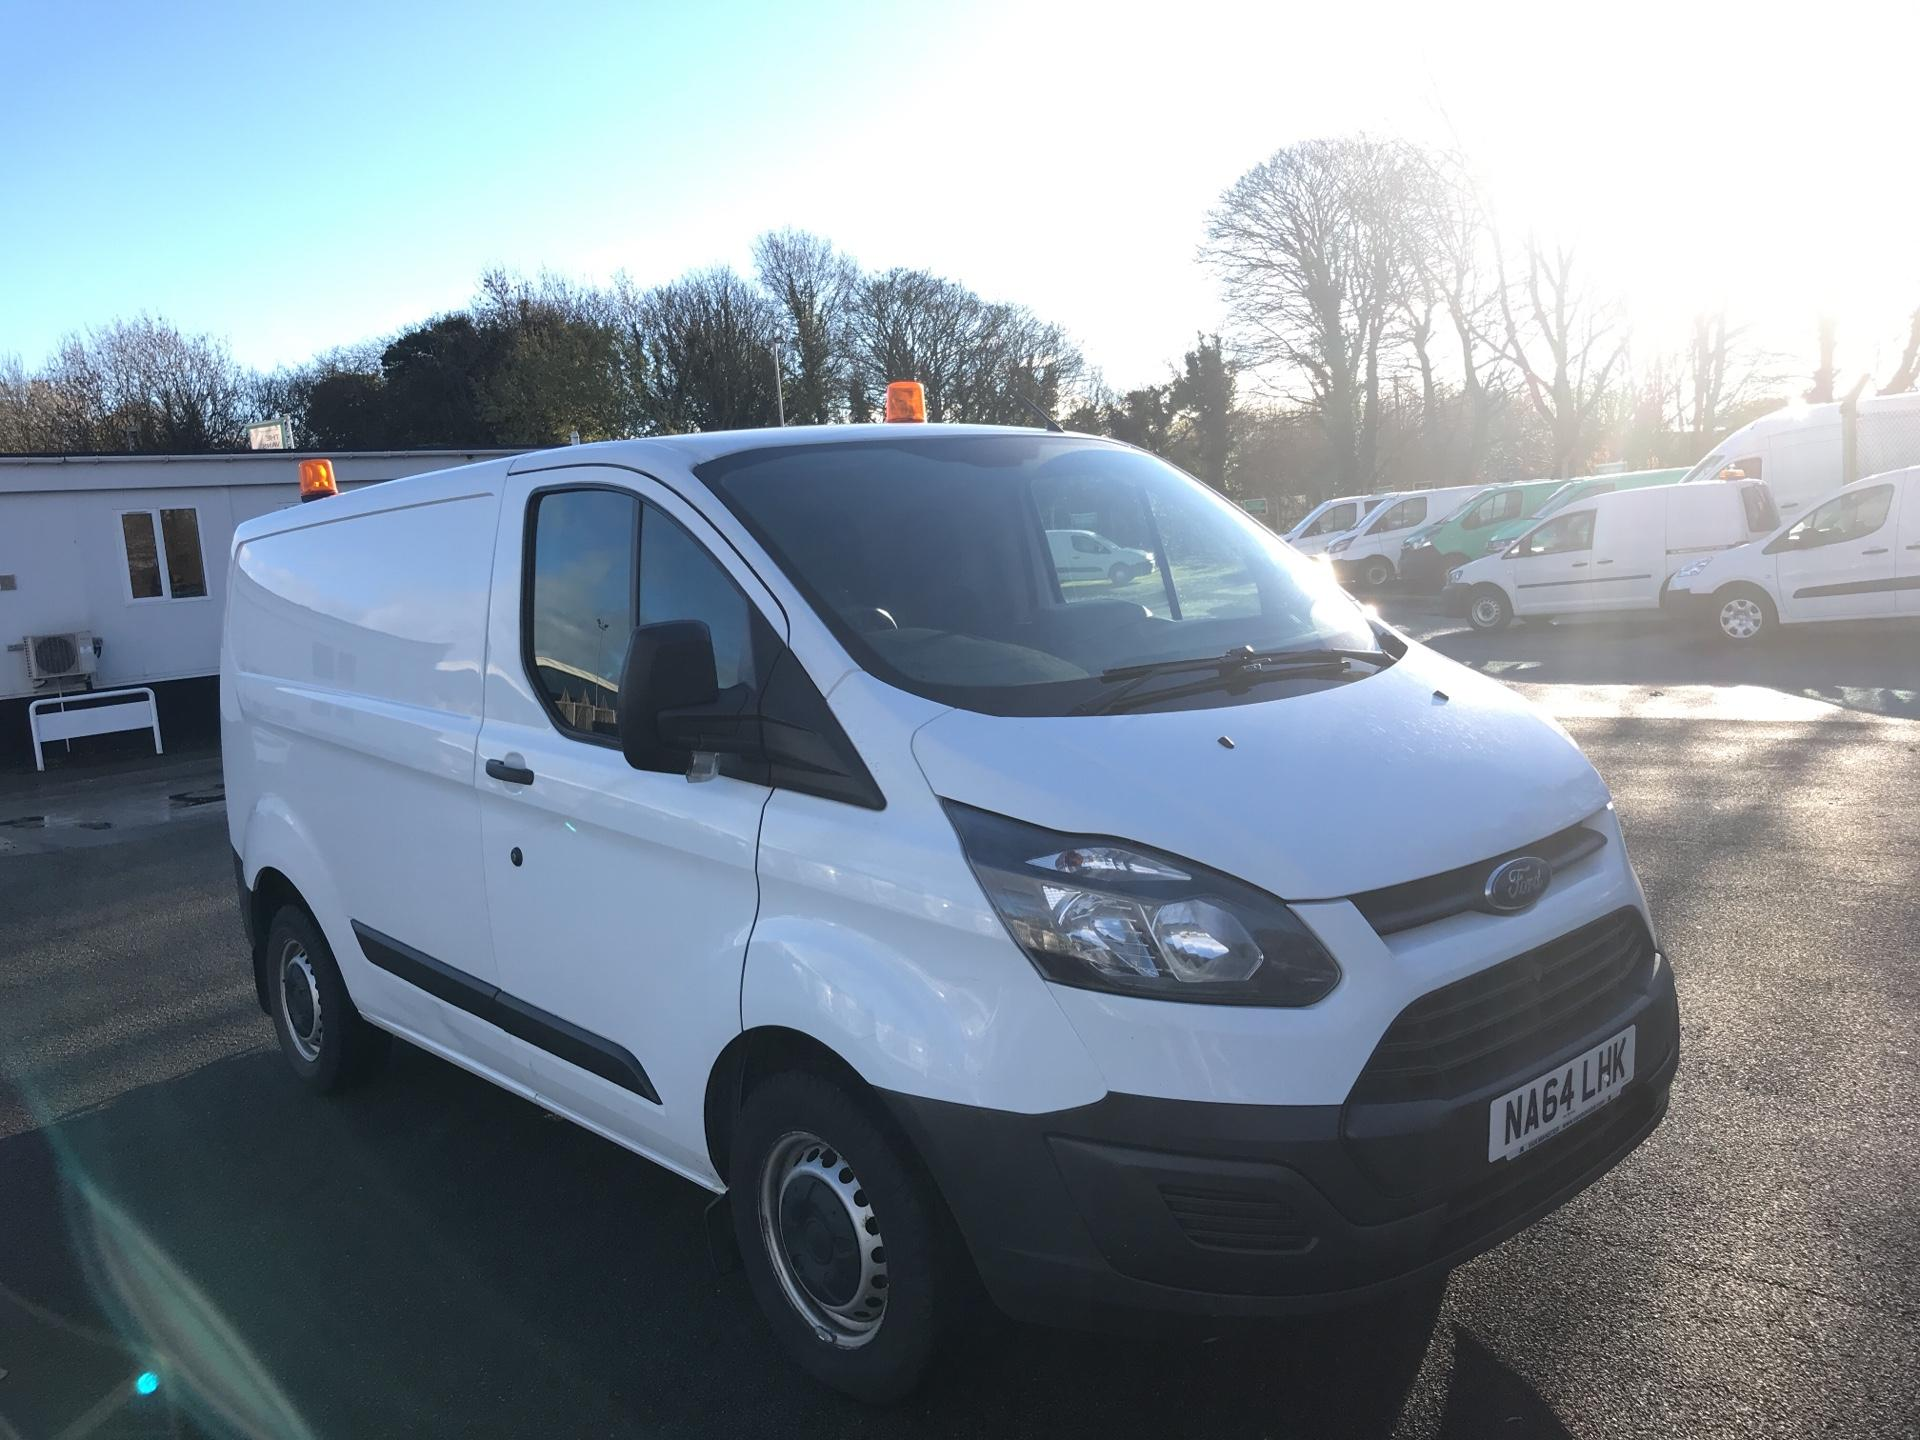 2014 Ford Transit Custom 290 L1 DIESEL FWD 2.2  TDCI 100PS LOW ROOF VAN EURO 5 *VALUE RANGE VEHICLE - CONDITION REFLECTED IN PRICE* (NA64LHK)